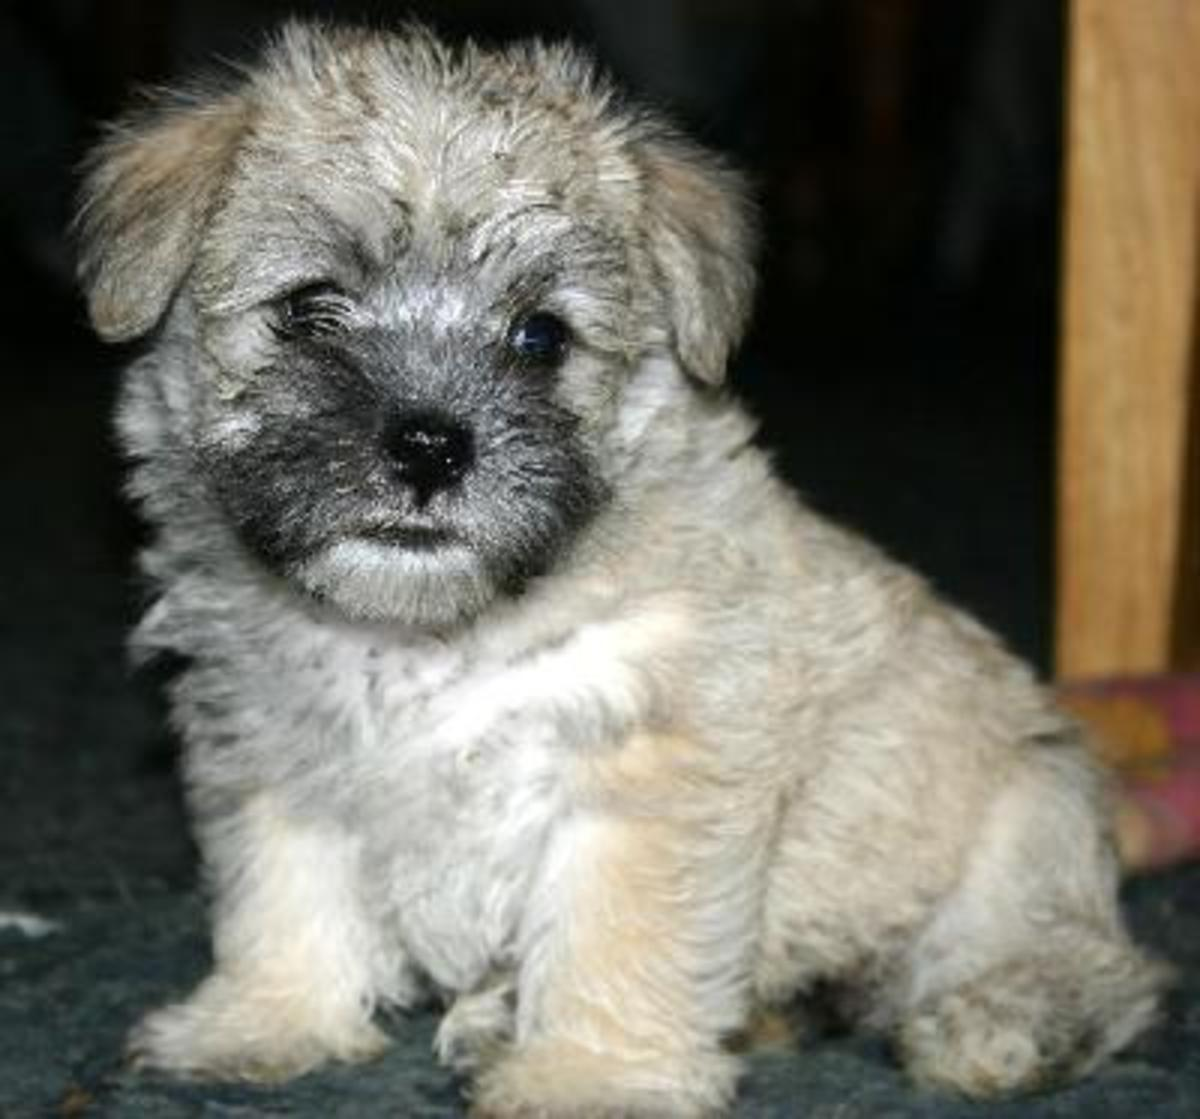 Mauzers, Labradoodles, Morkies, and Teddy Bears| The Truth about Designer Crossbred Puppies